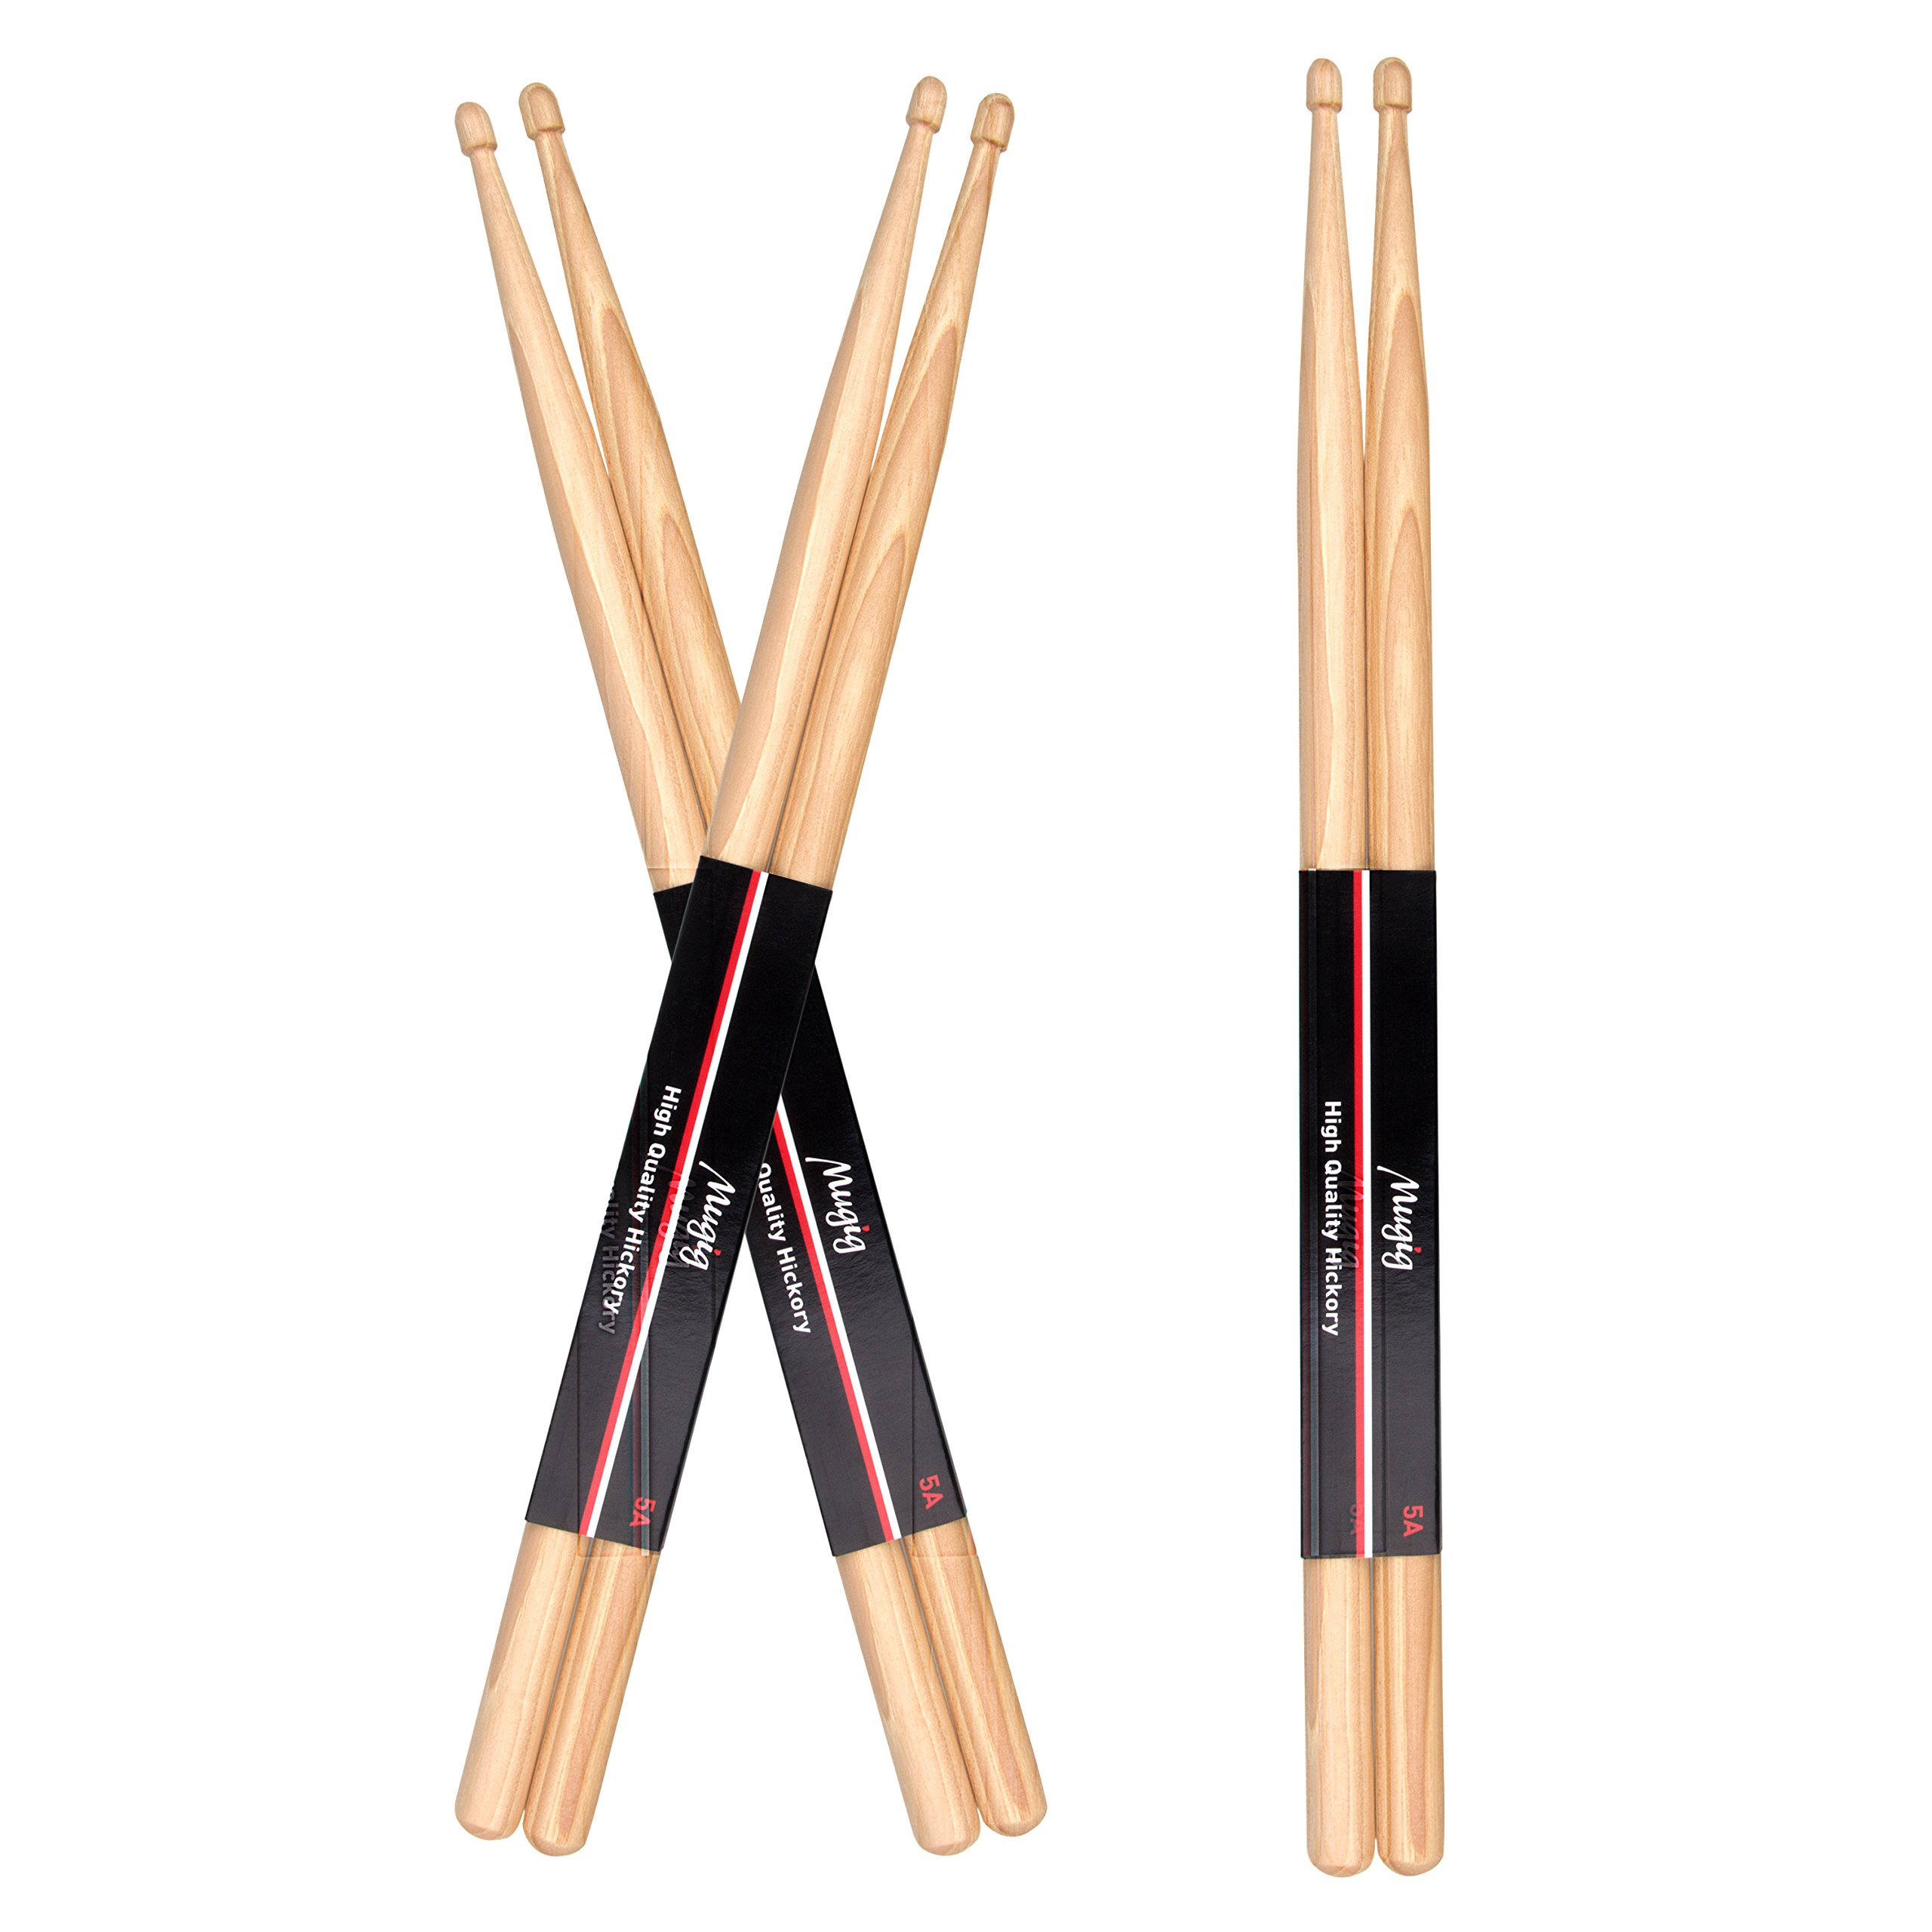 Mugig Drum Sticks Hickory Rock Sticks for Jazz Pop Rock Music (3 Pairs)